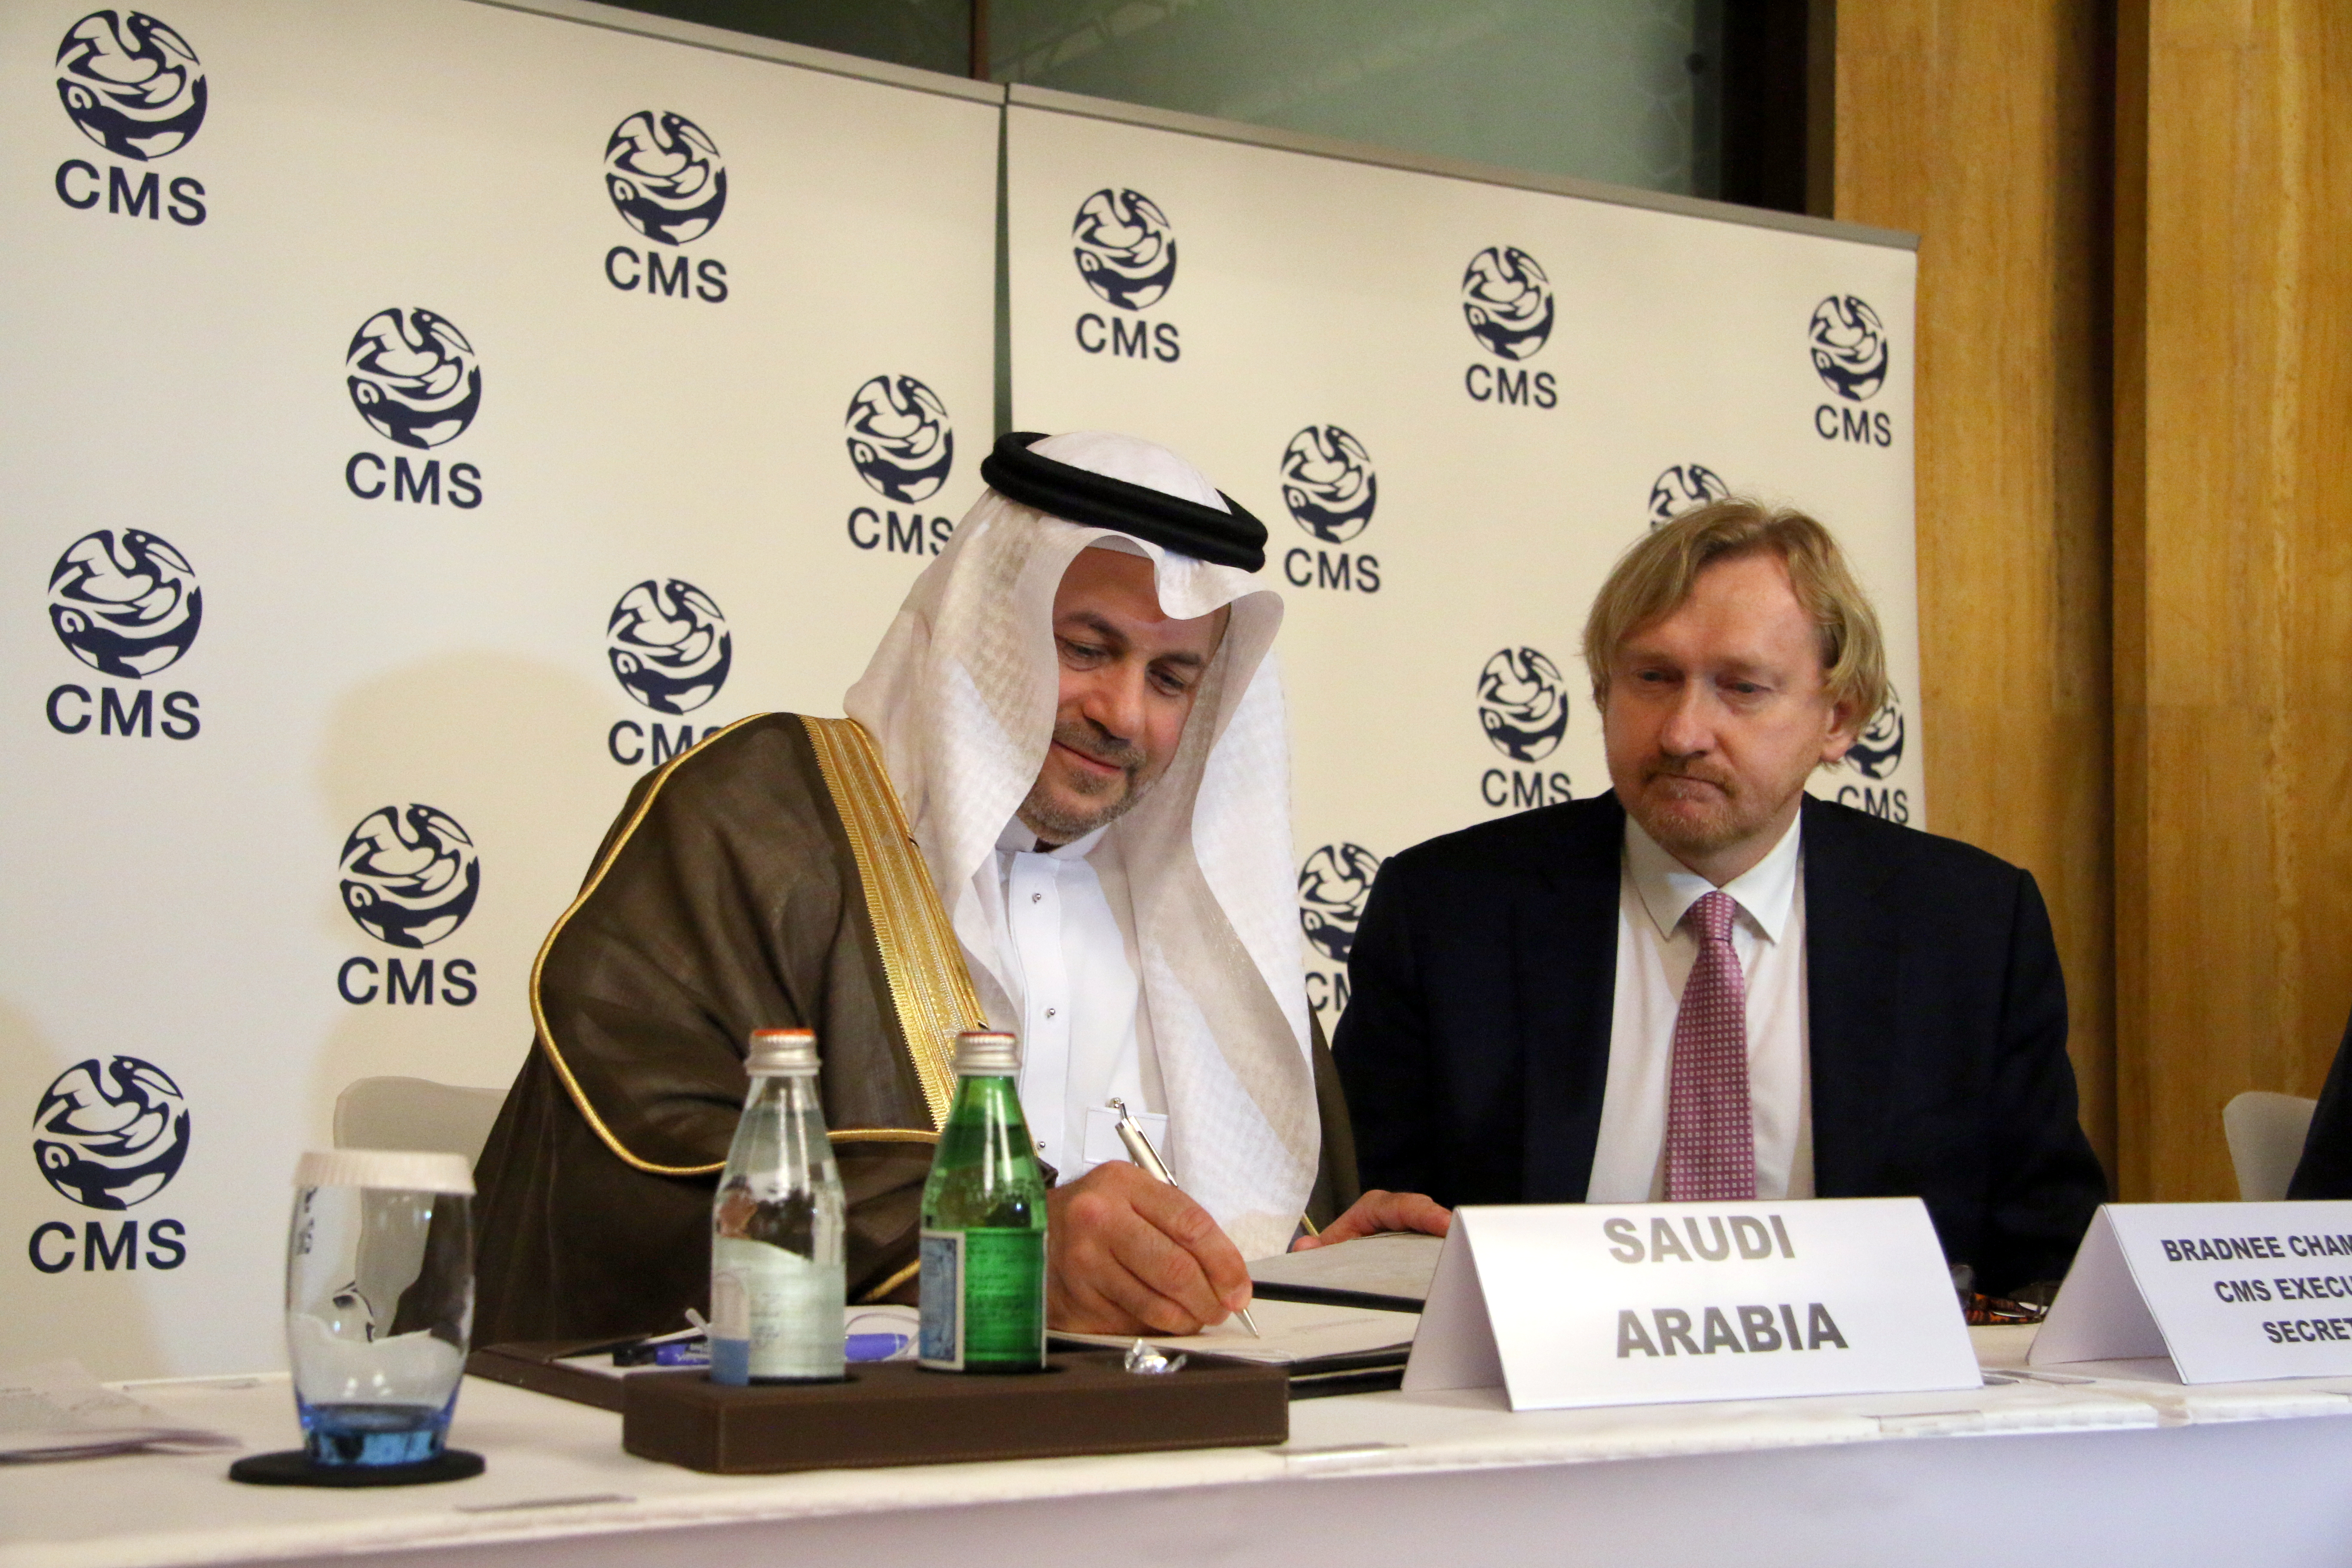 Dr. Hany Tatwany, Vice President of the Saudi Wildlife Authority, signs the Sharks MOU on behalf of the Kingdom of Saudi Arabia; photo credits: Heidrun Frisch-Nwakanma